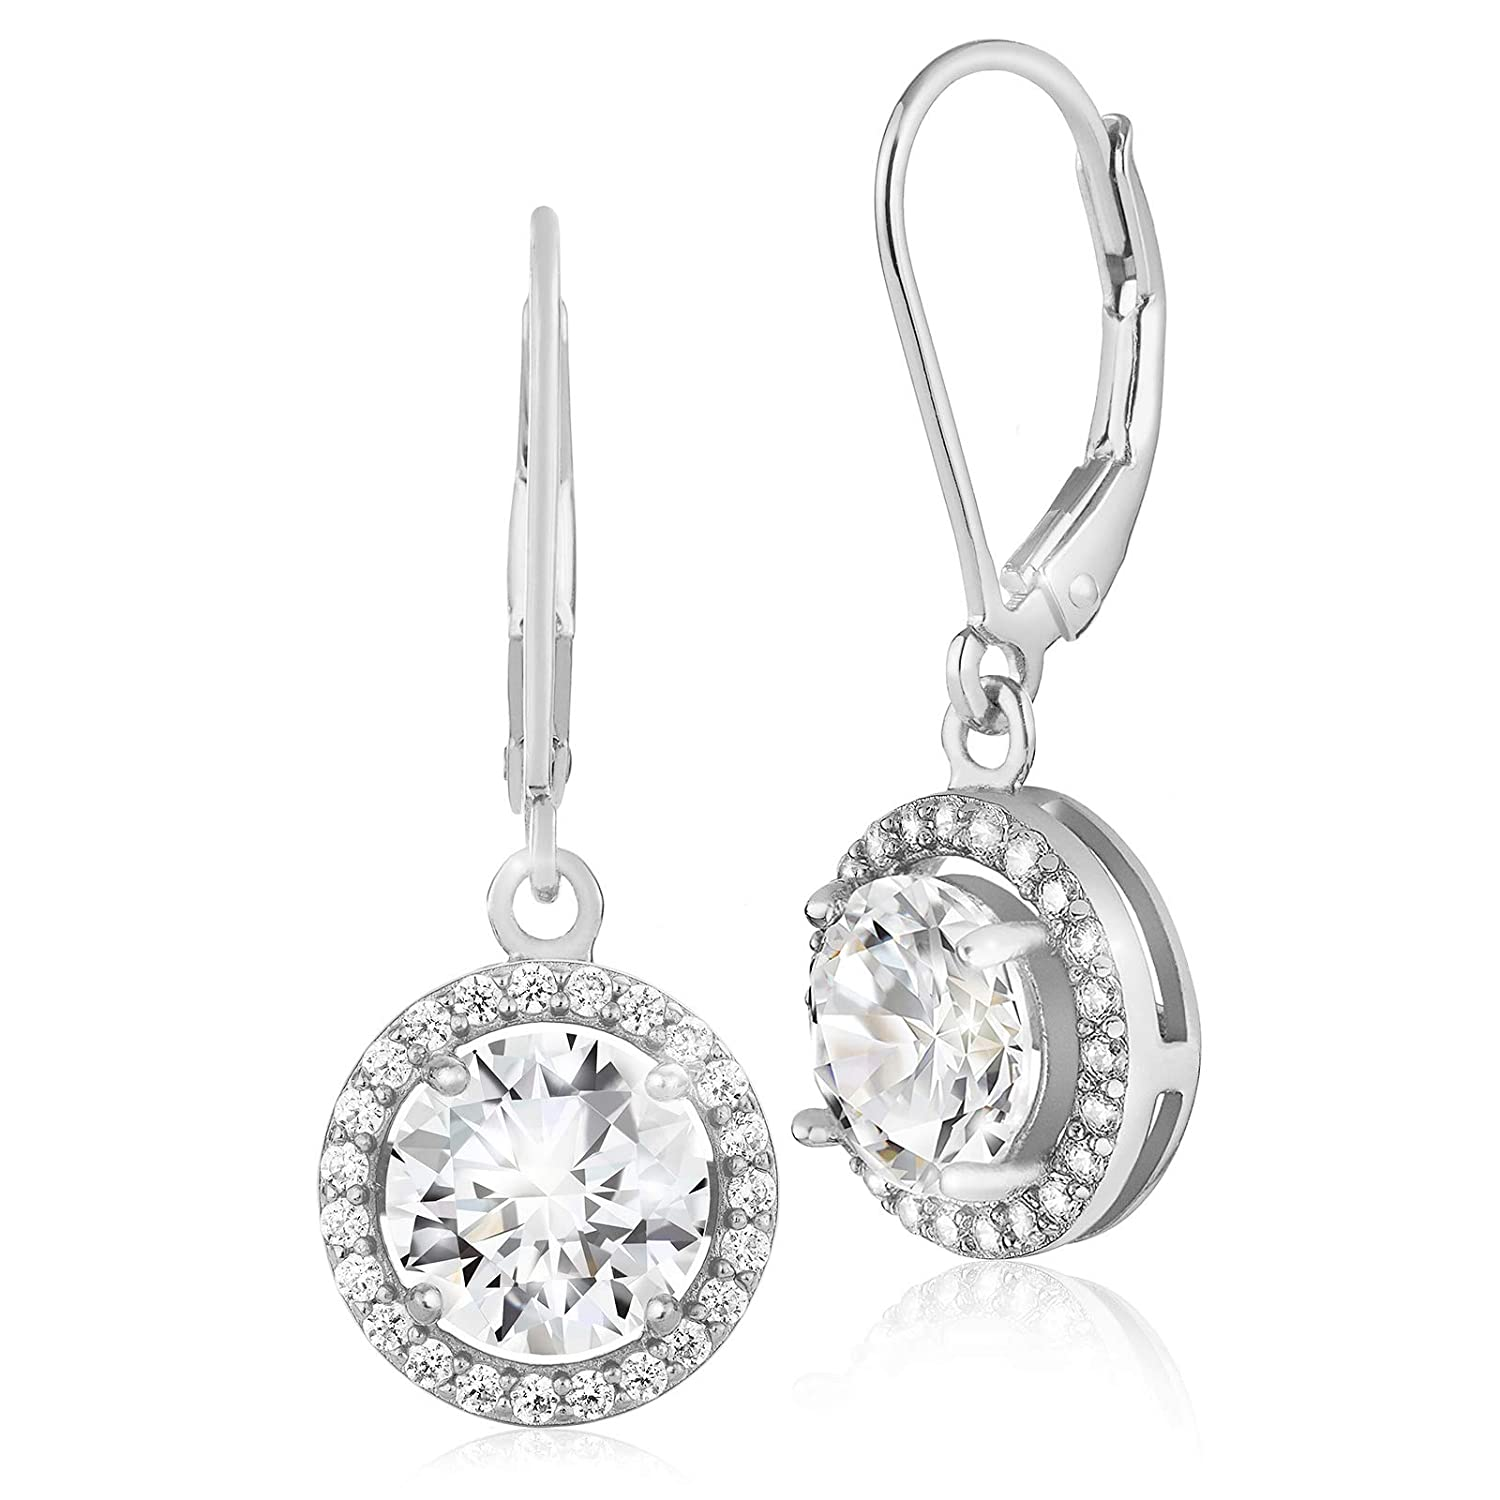 448ed861e Amazon.com: Lusoro 925 Sterling Silver Round AAA Cubic Zirconia Halo  Leverback Dangle Earrings: Jewelry